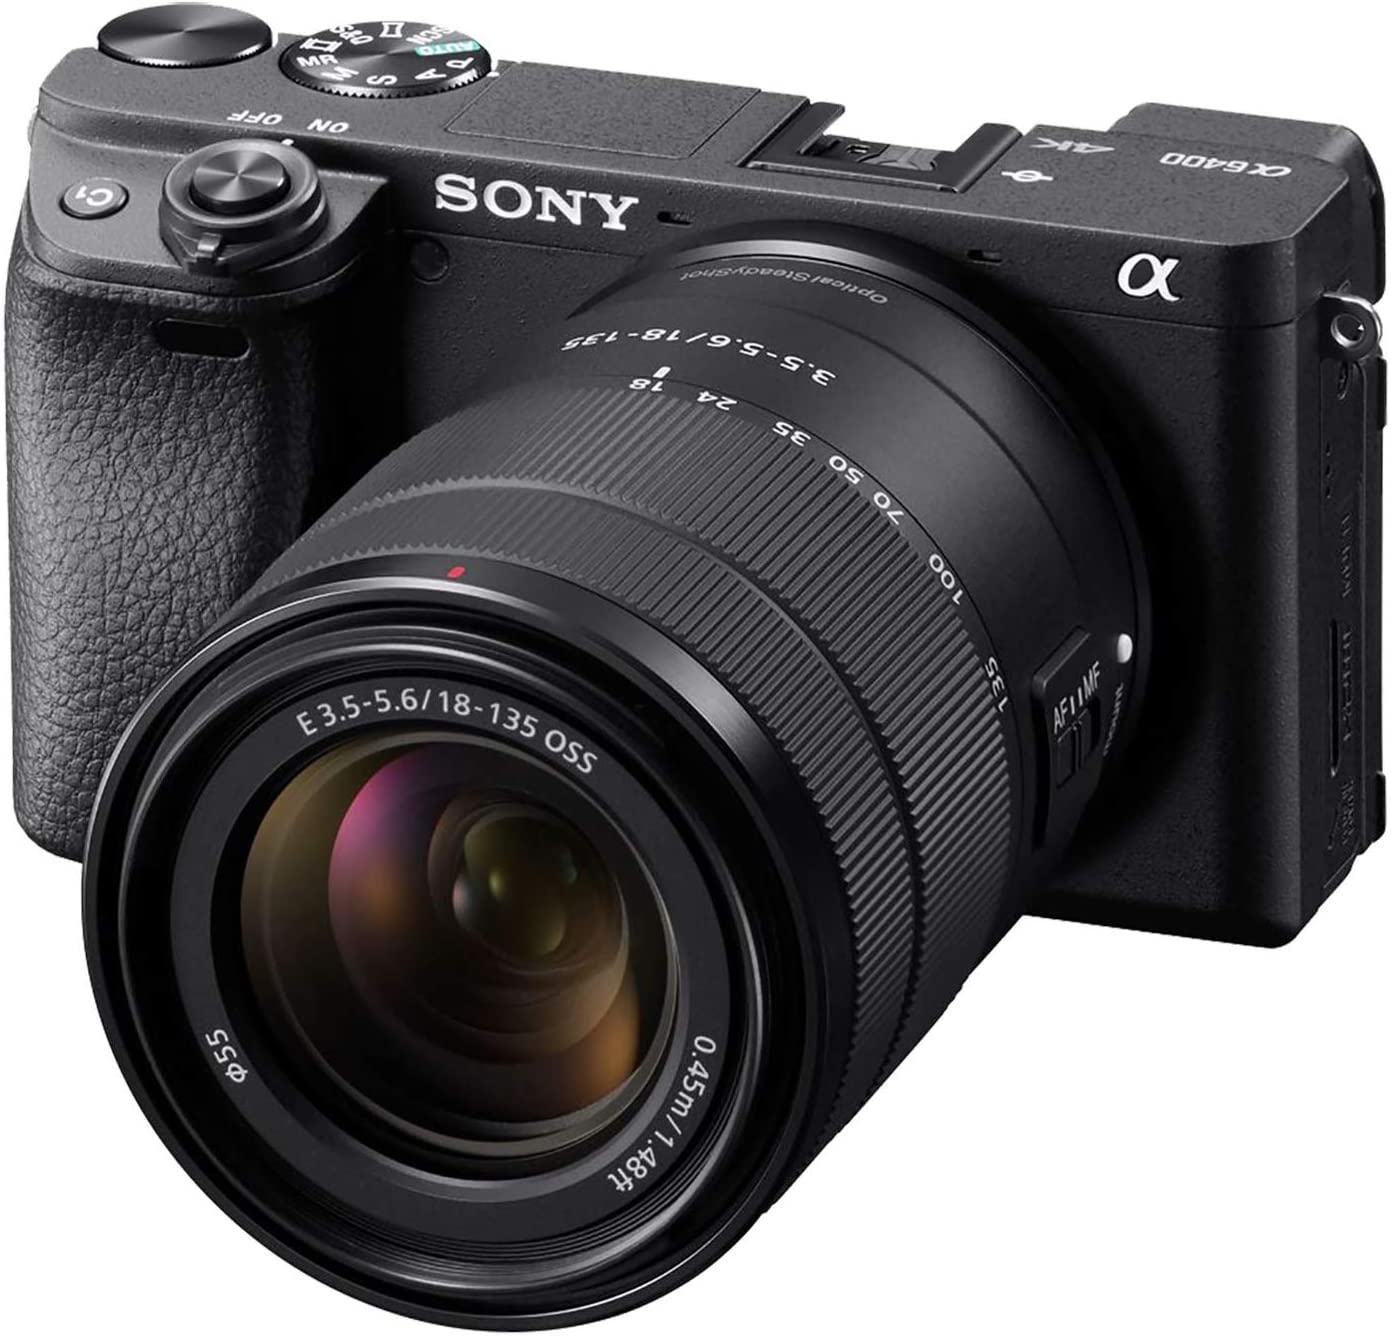 Best Camera For Filmmaking On a Budget Under $1500 - Sony Alpha A6400